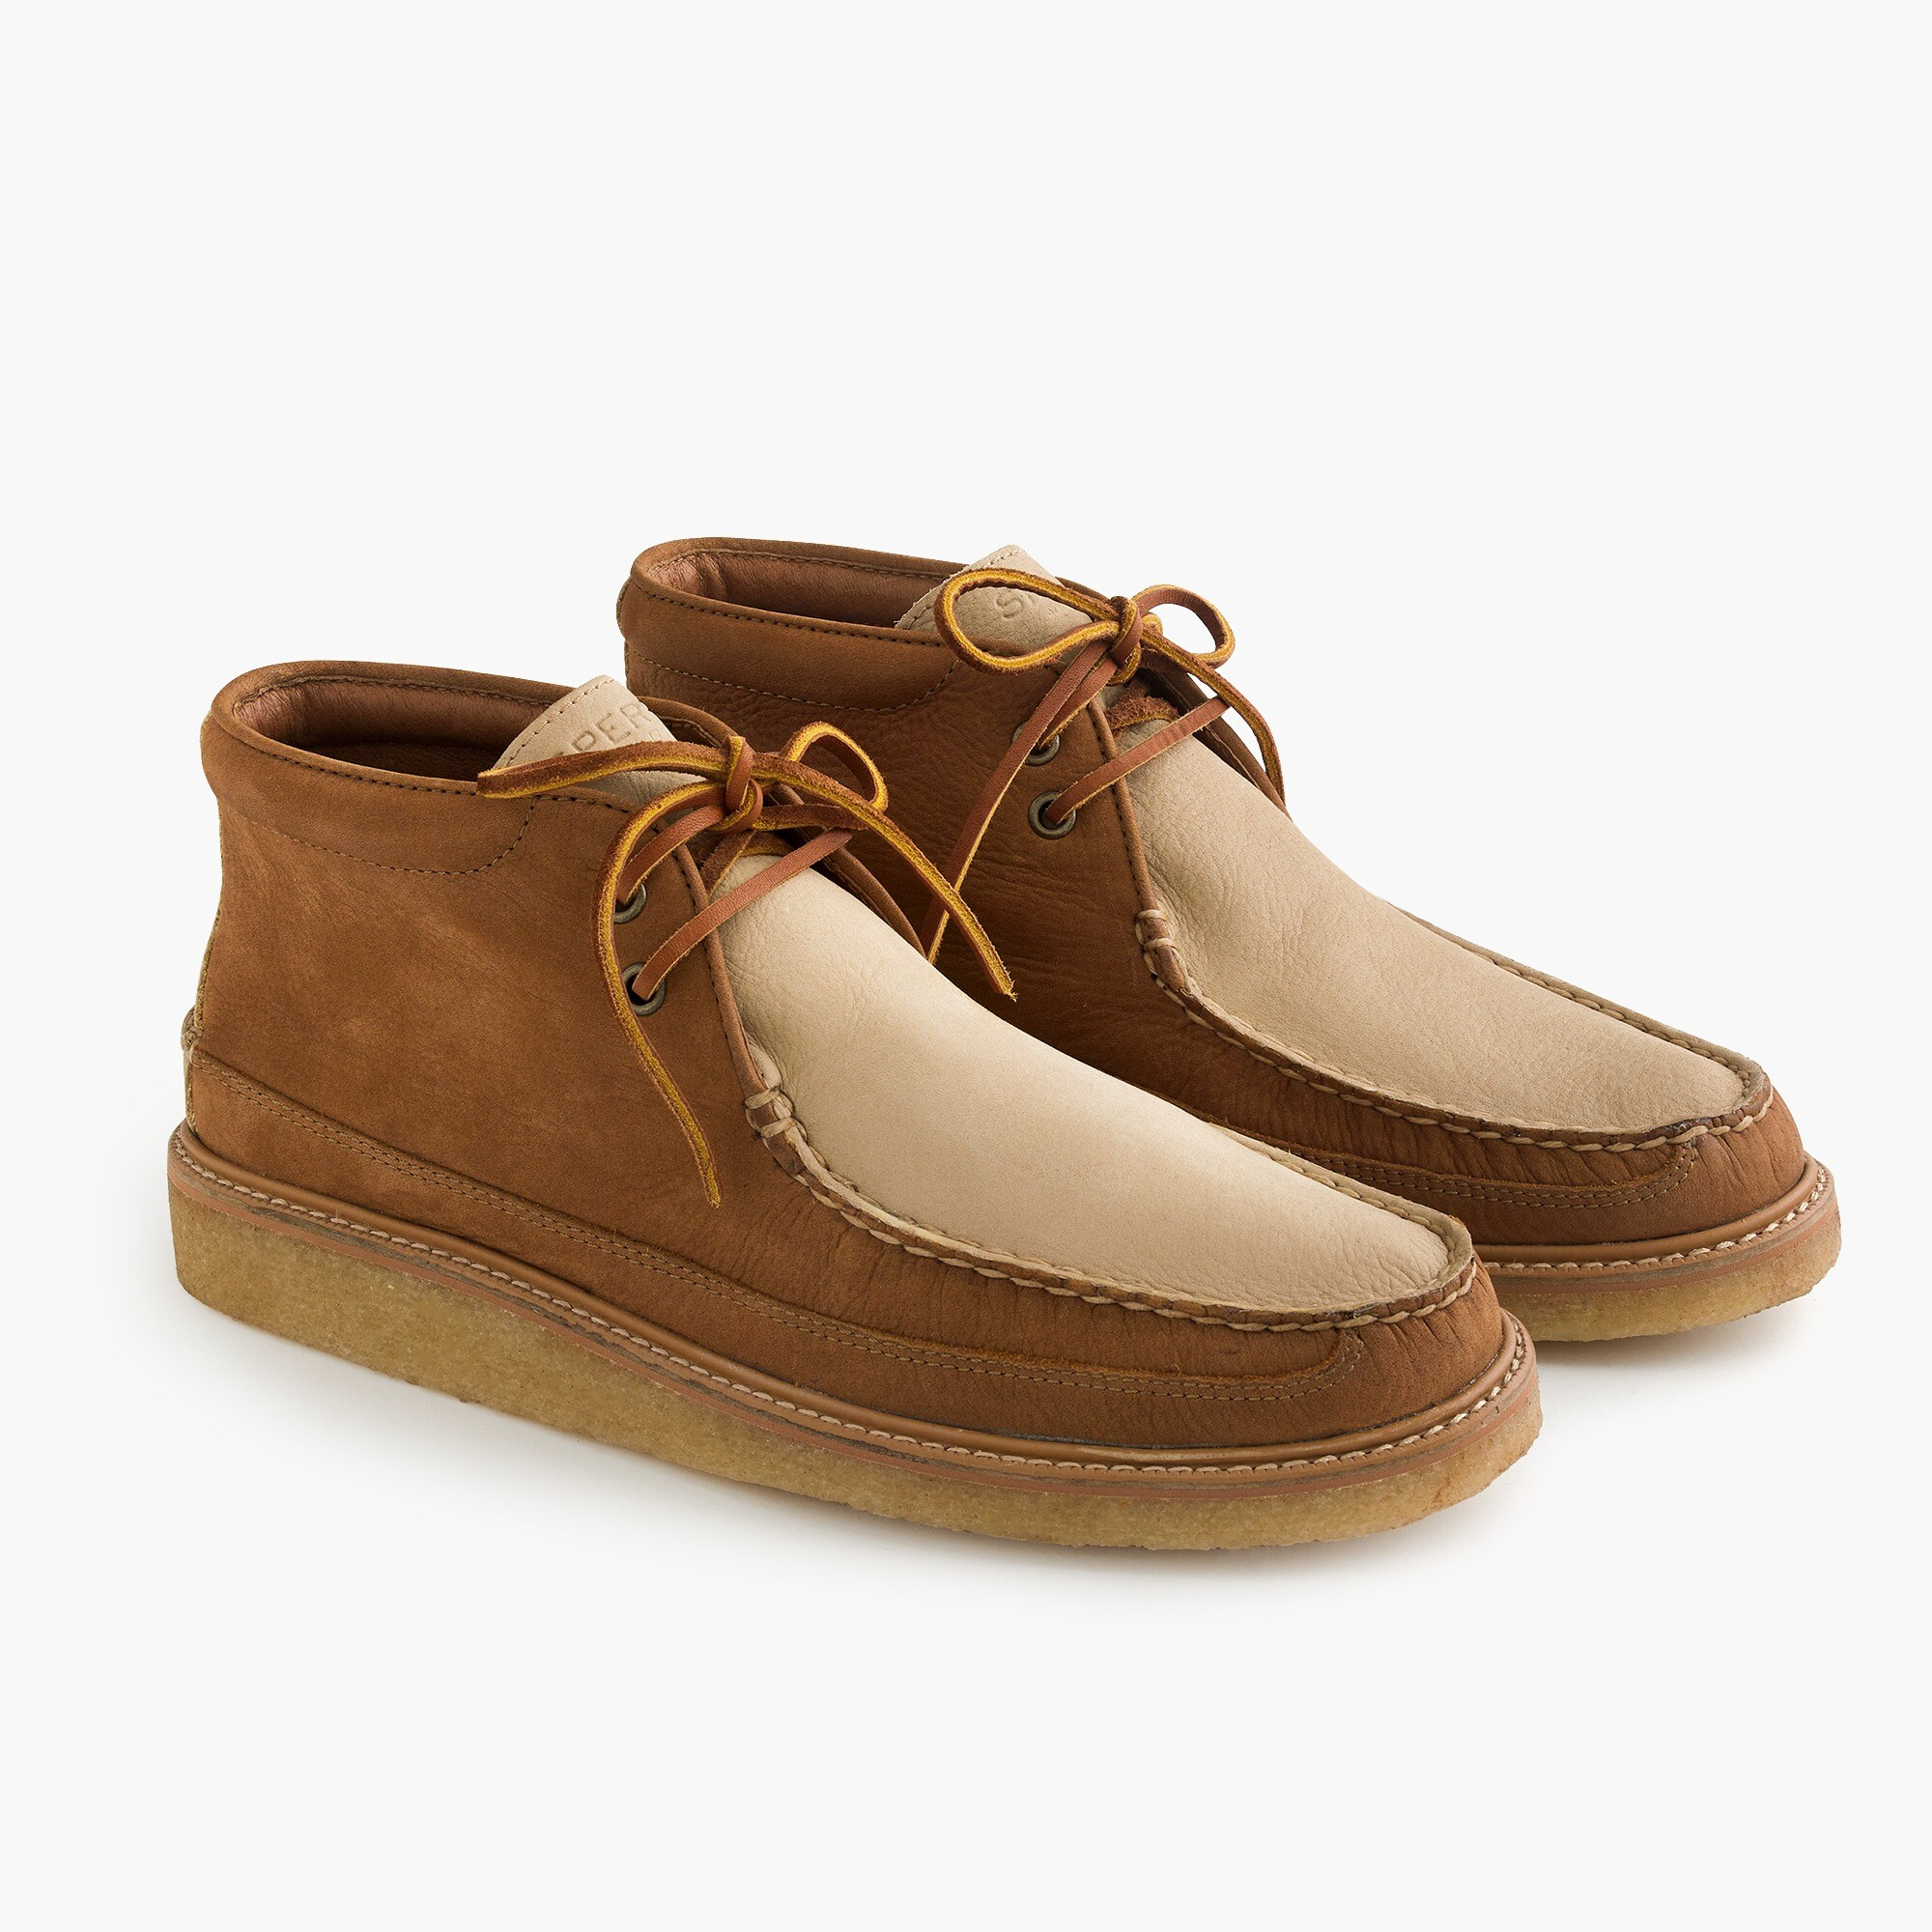 Sperry® for J.Crew crepe soled leather chukka boots